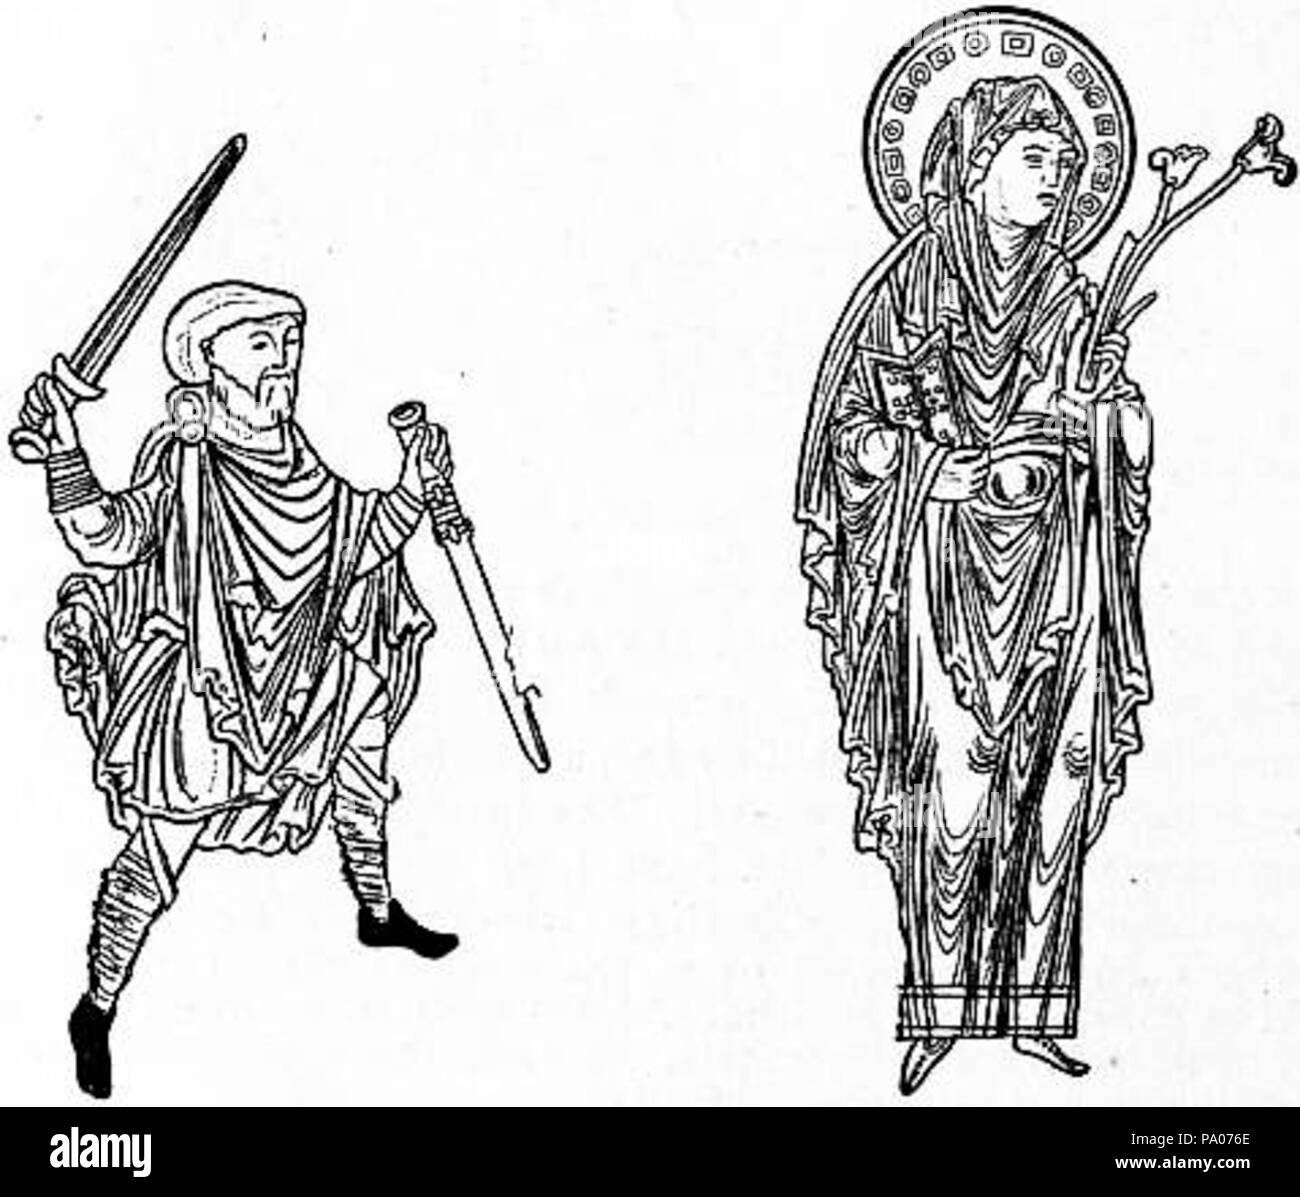 602 EB1911 Costume Figs. 25 & 26.—Old English Dress, Blessed Virgin - Stock Image